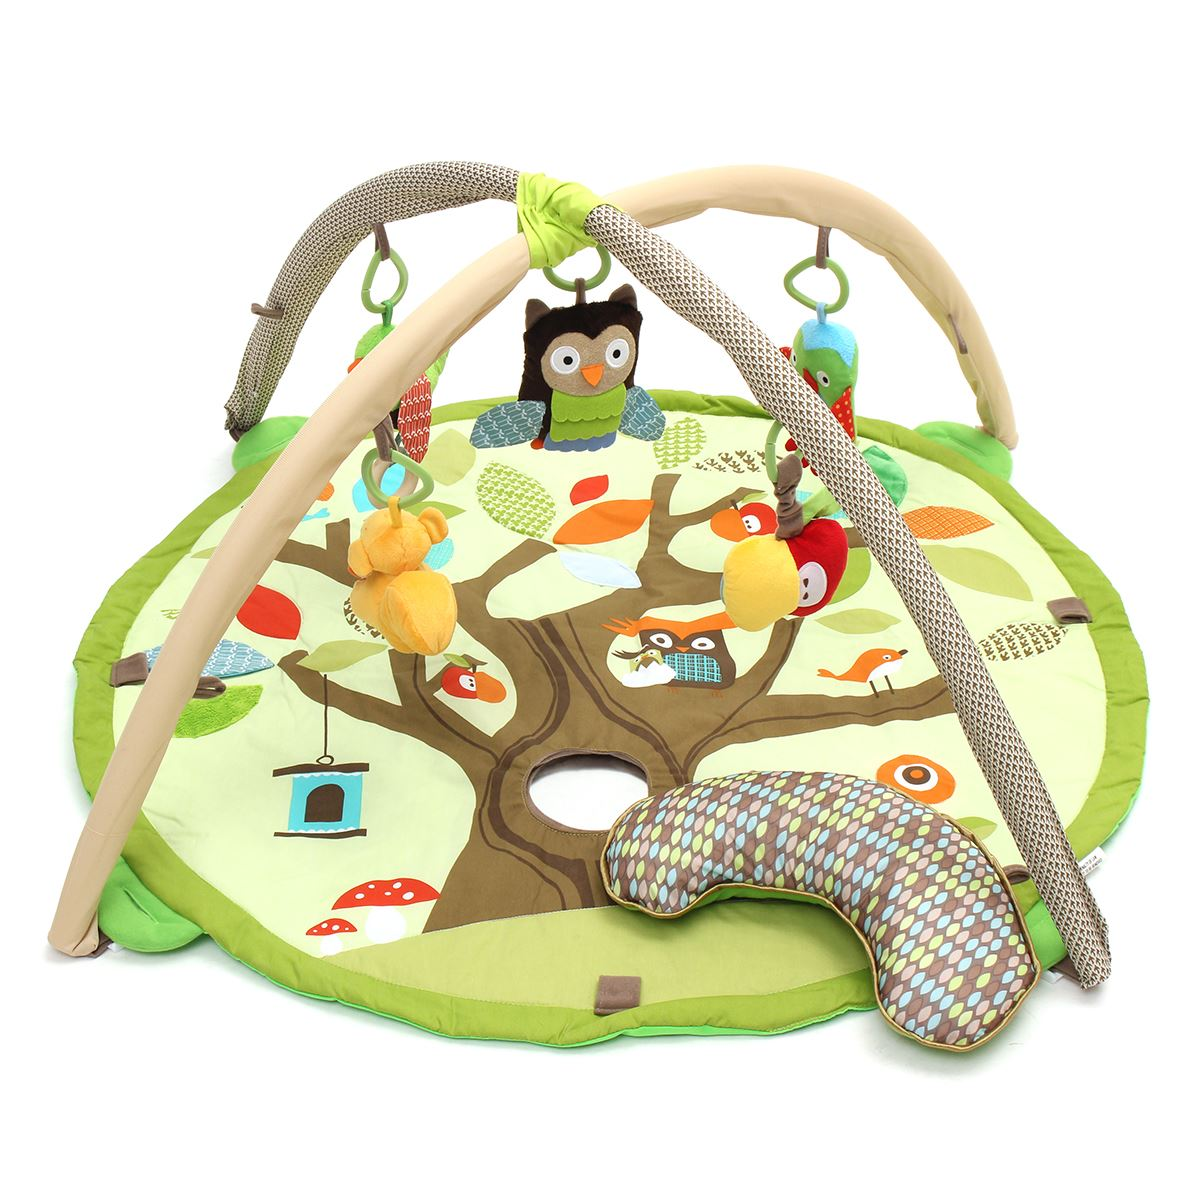 Newborn Infant Baby Crib Children Activity Gym Playmat Soft Floor Rug Kids Toy Carpet Colorful Cartoon Patterns Baby Bedding 3 in 1 newborn infant baby game bed baby toddler cribs crawling activity gym mat floor blanket kids toys carpet bedding soft